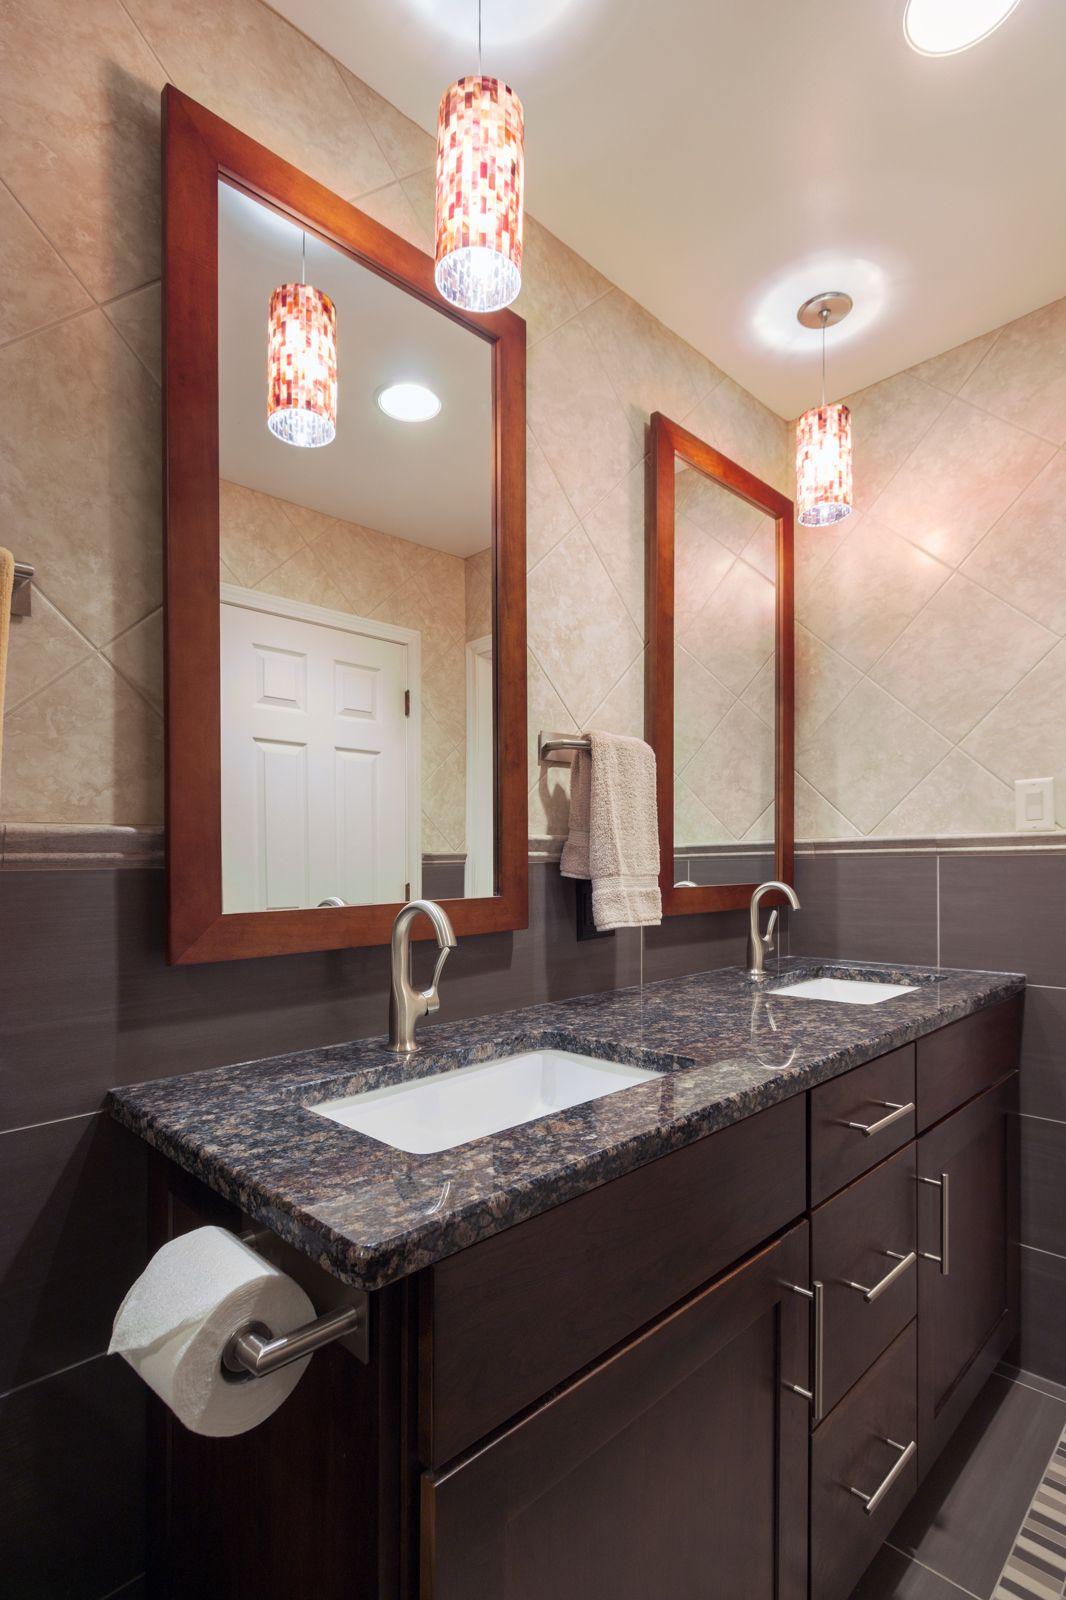 Home Additions Near Chicago, IL (With images) | Home ...